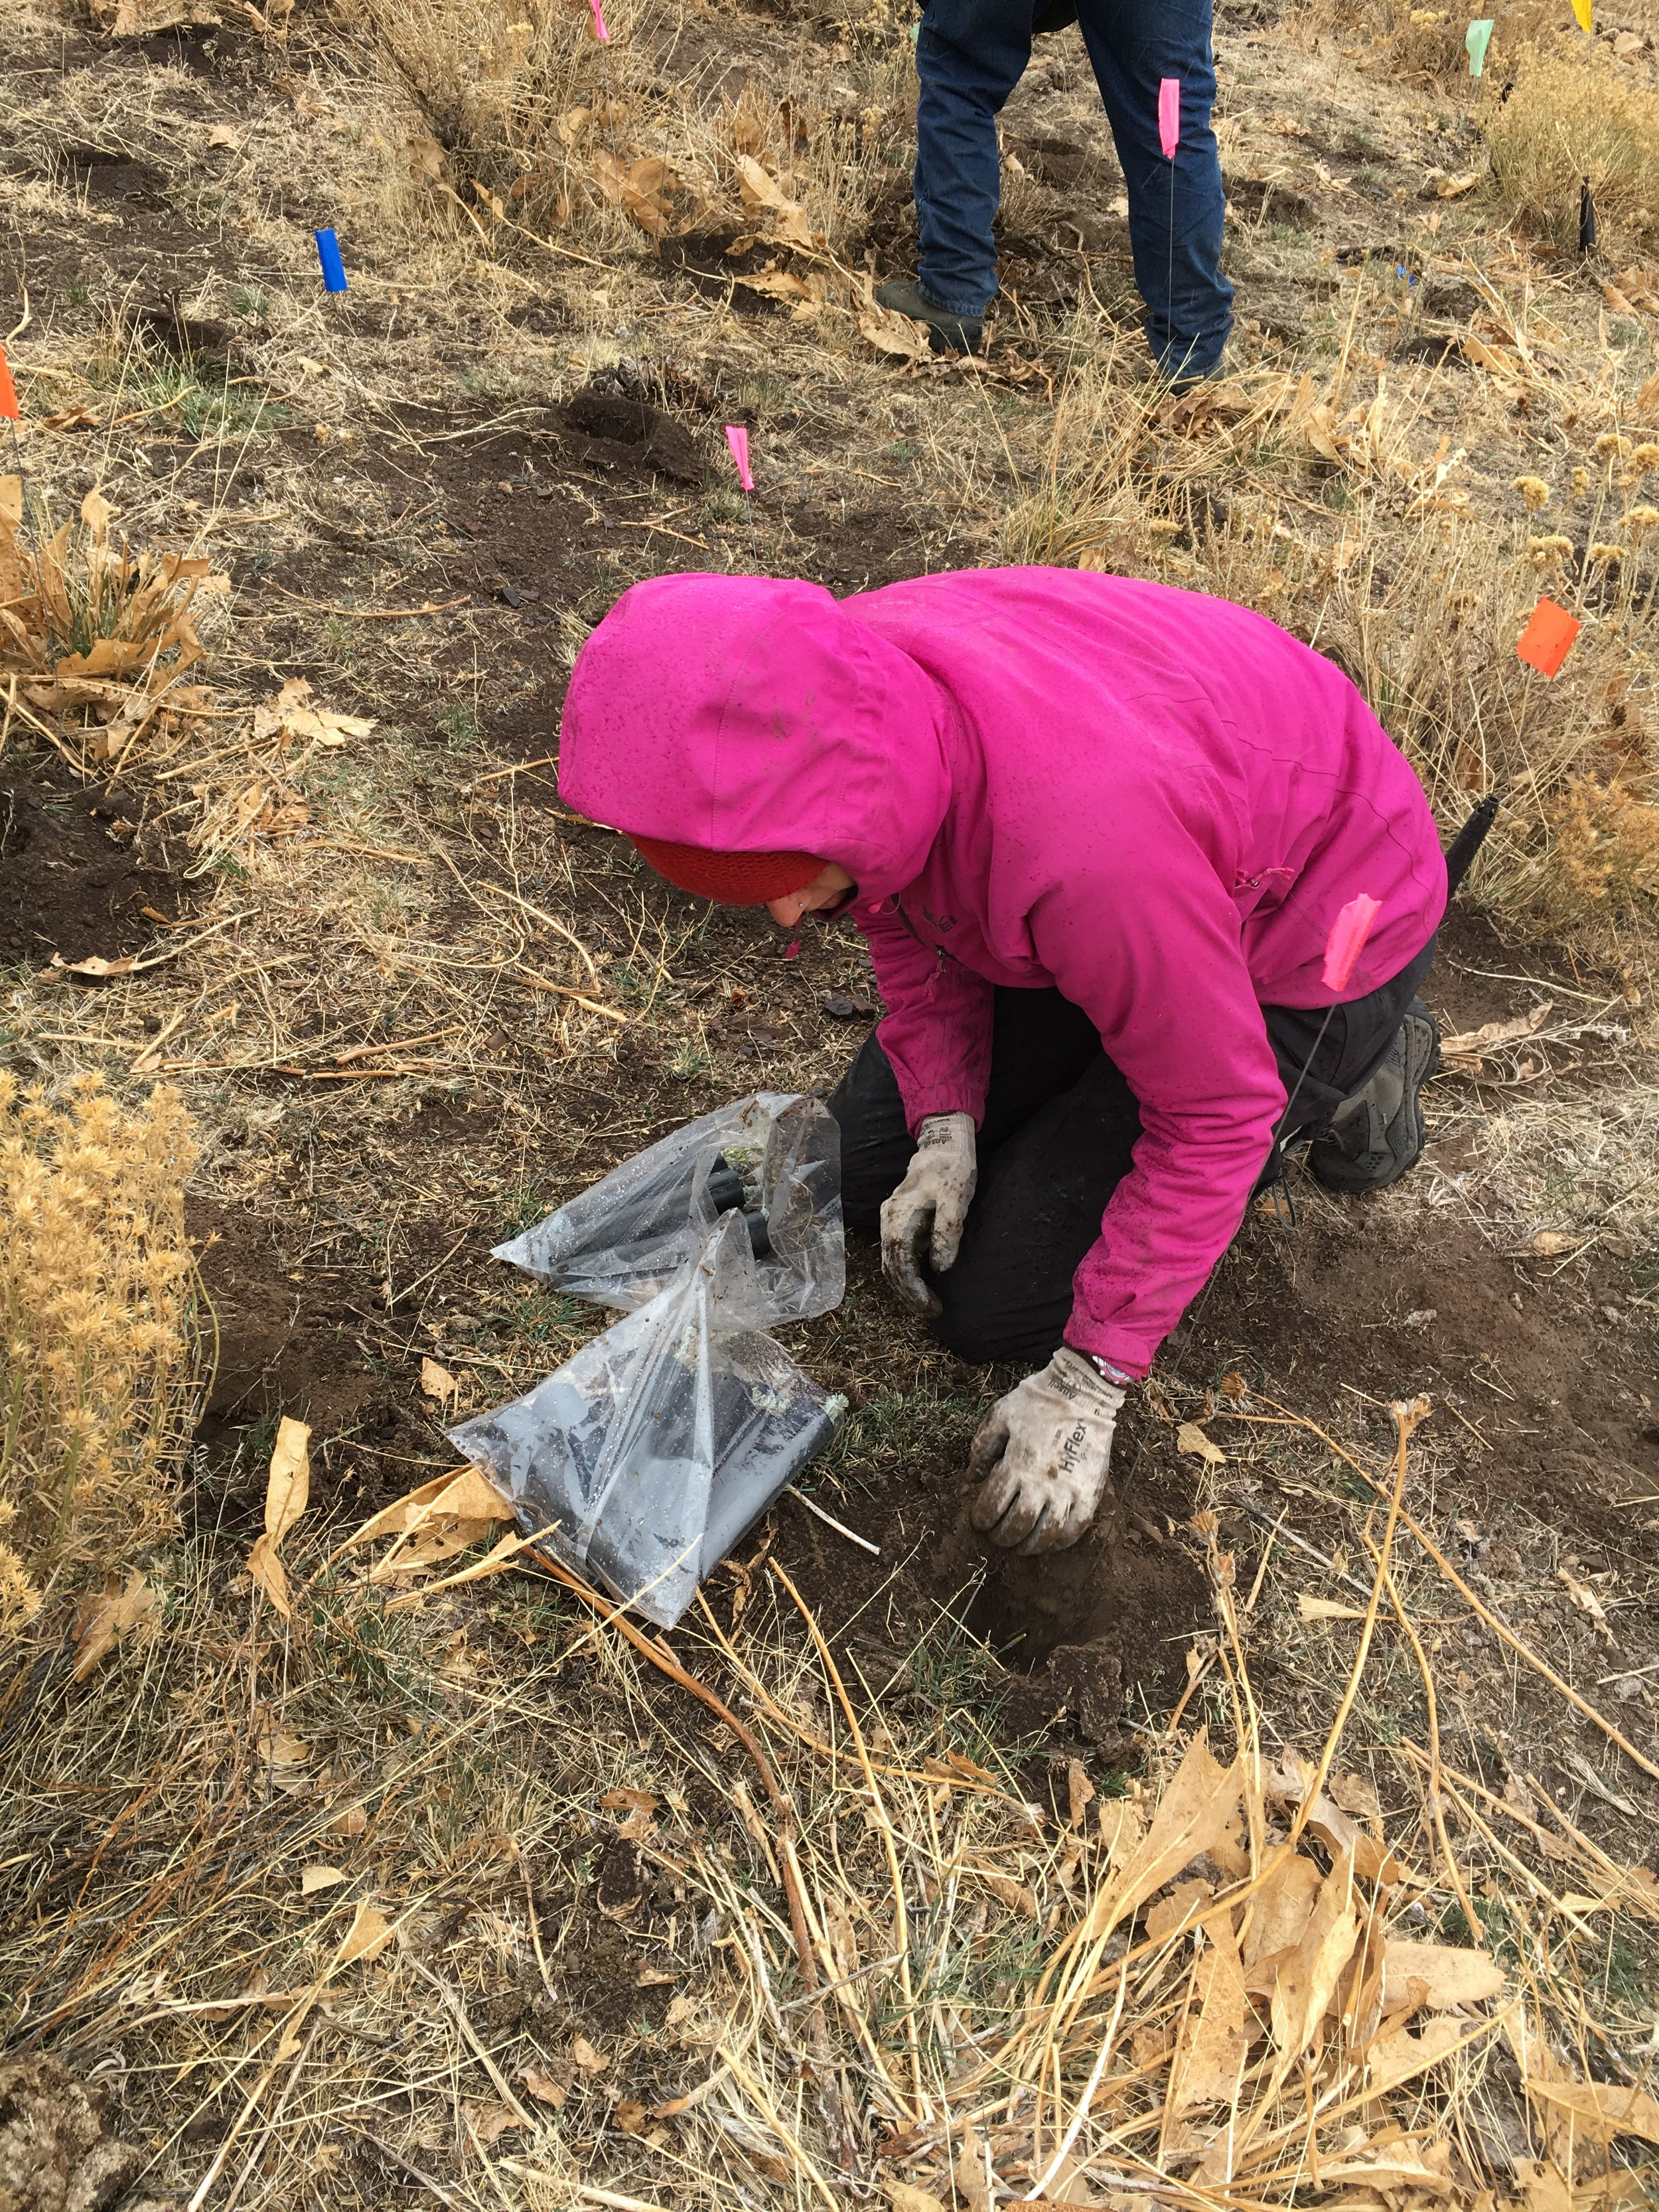 Zell and her fellow interns brave sagebrush country in November to plant sagebrush seedlings in an area that had recently burned.